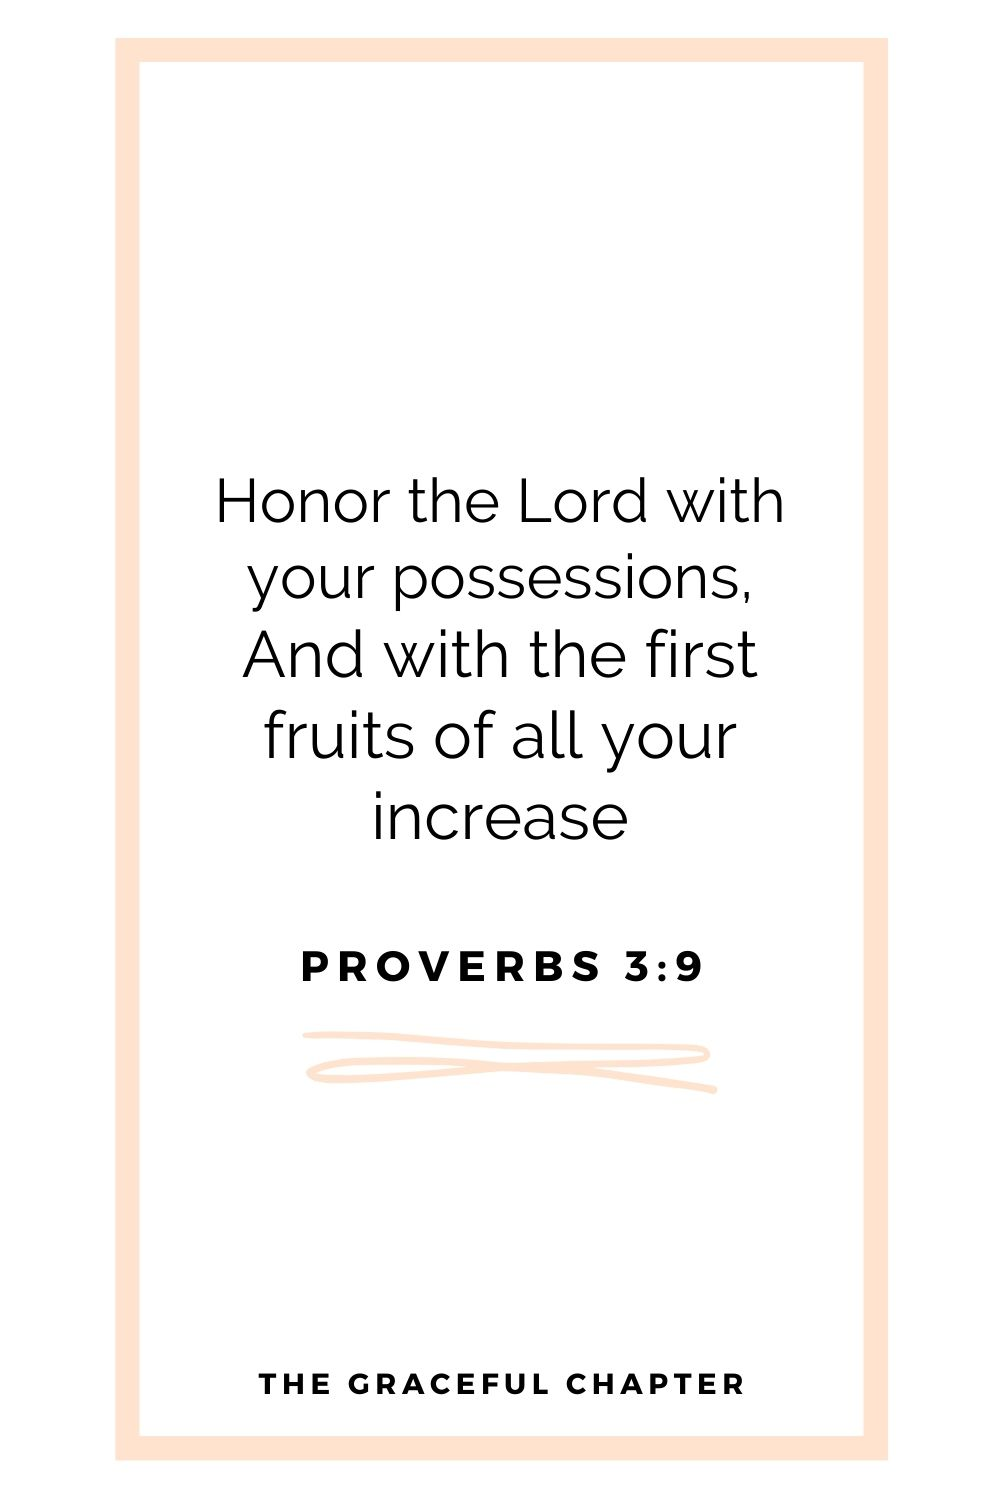 Honor the Lord with your possessions, And with the first fruits of all your increase Proverbs 3:9